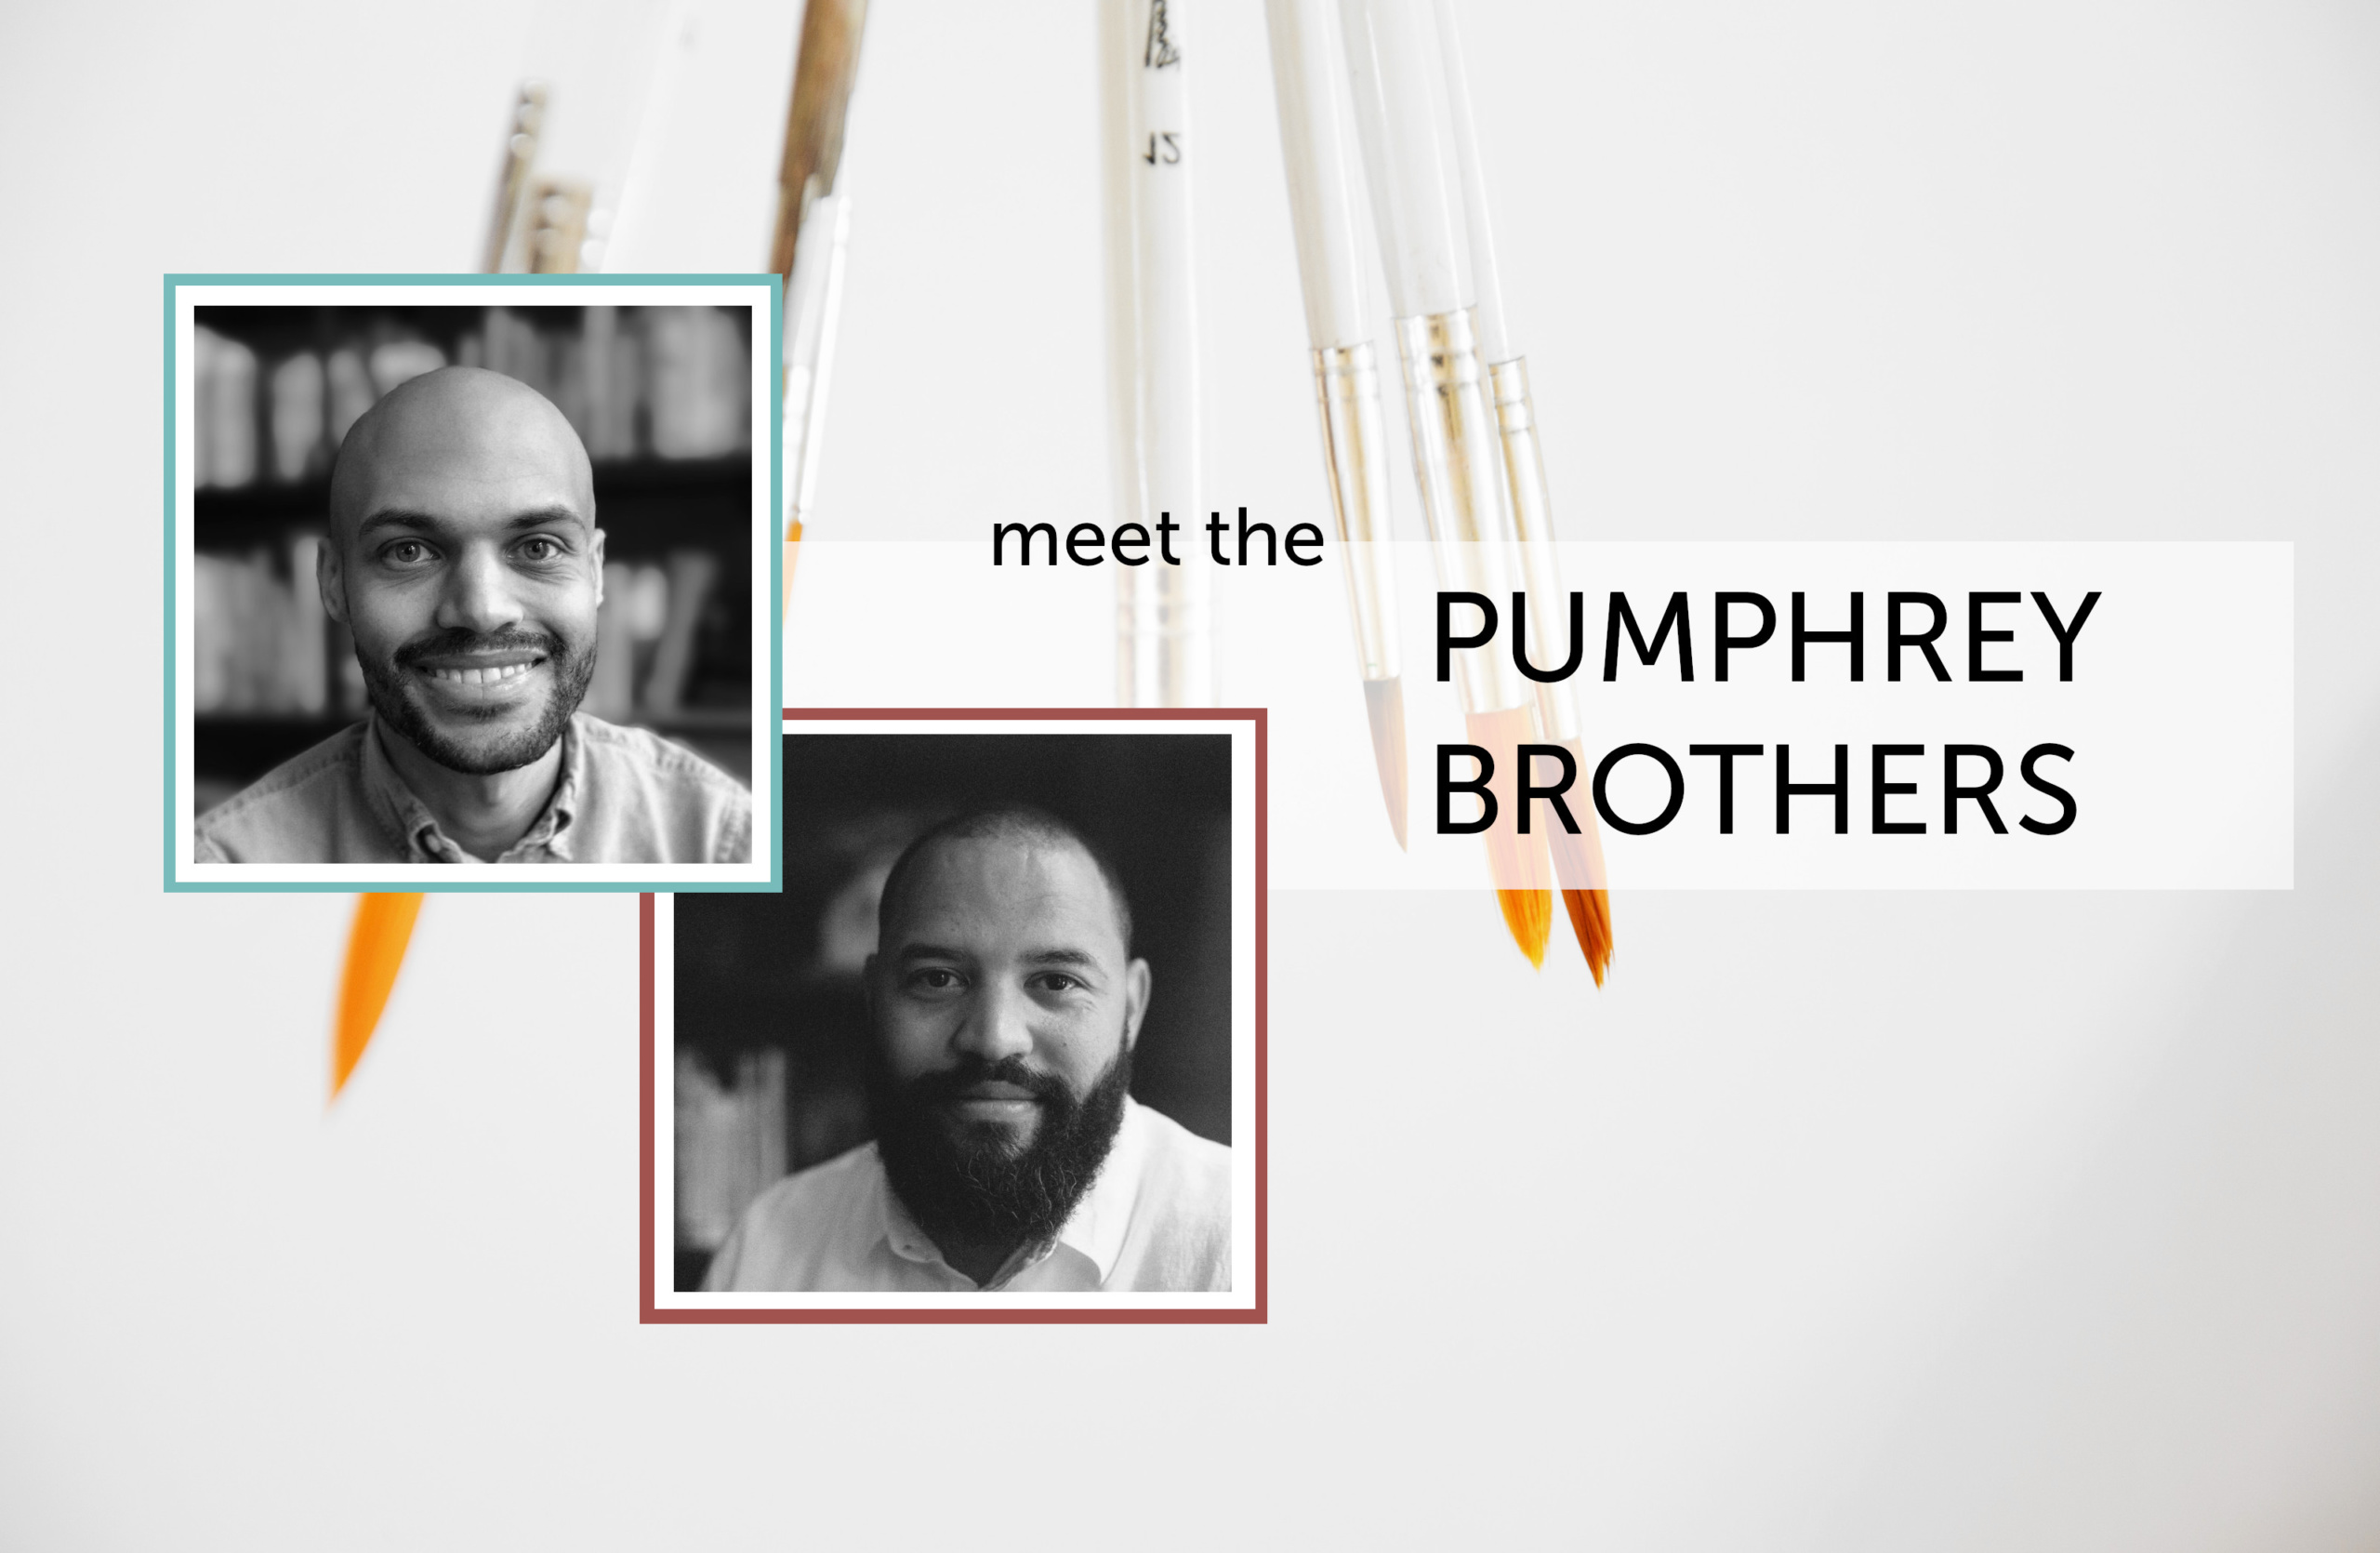 Illustrator Spotlight: The Pumphrey Brothers